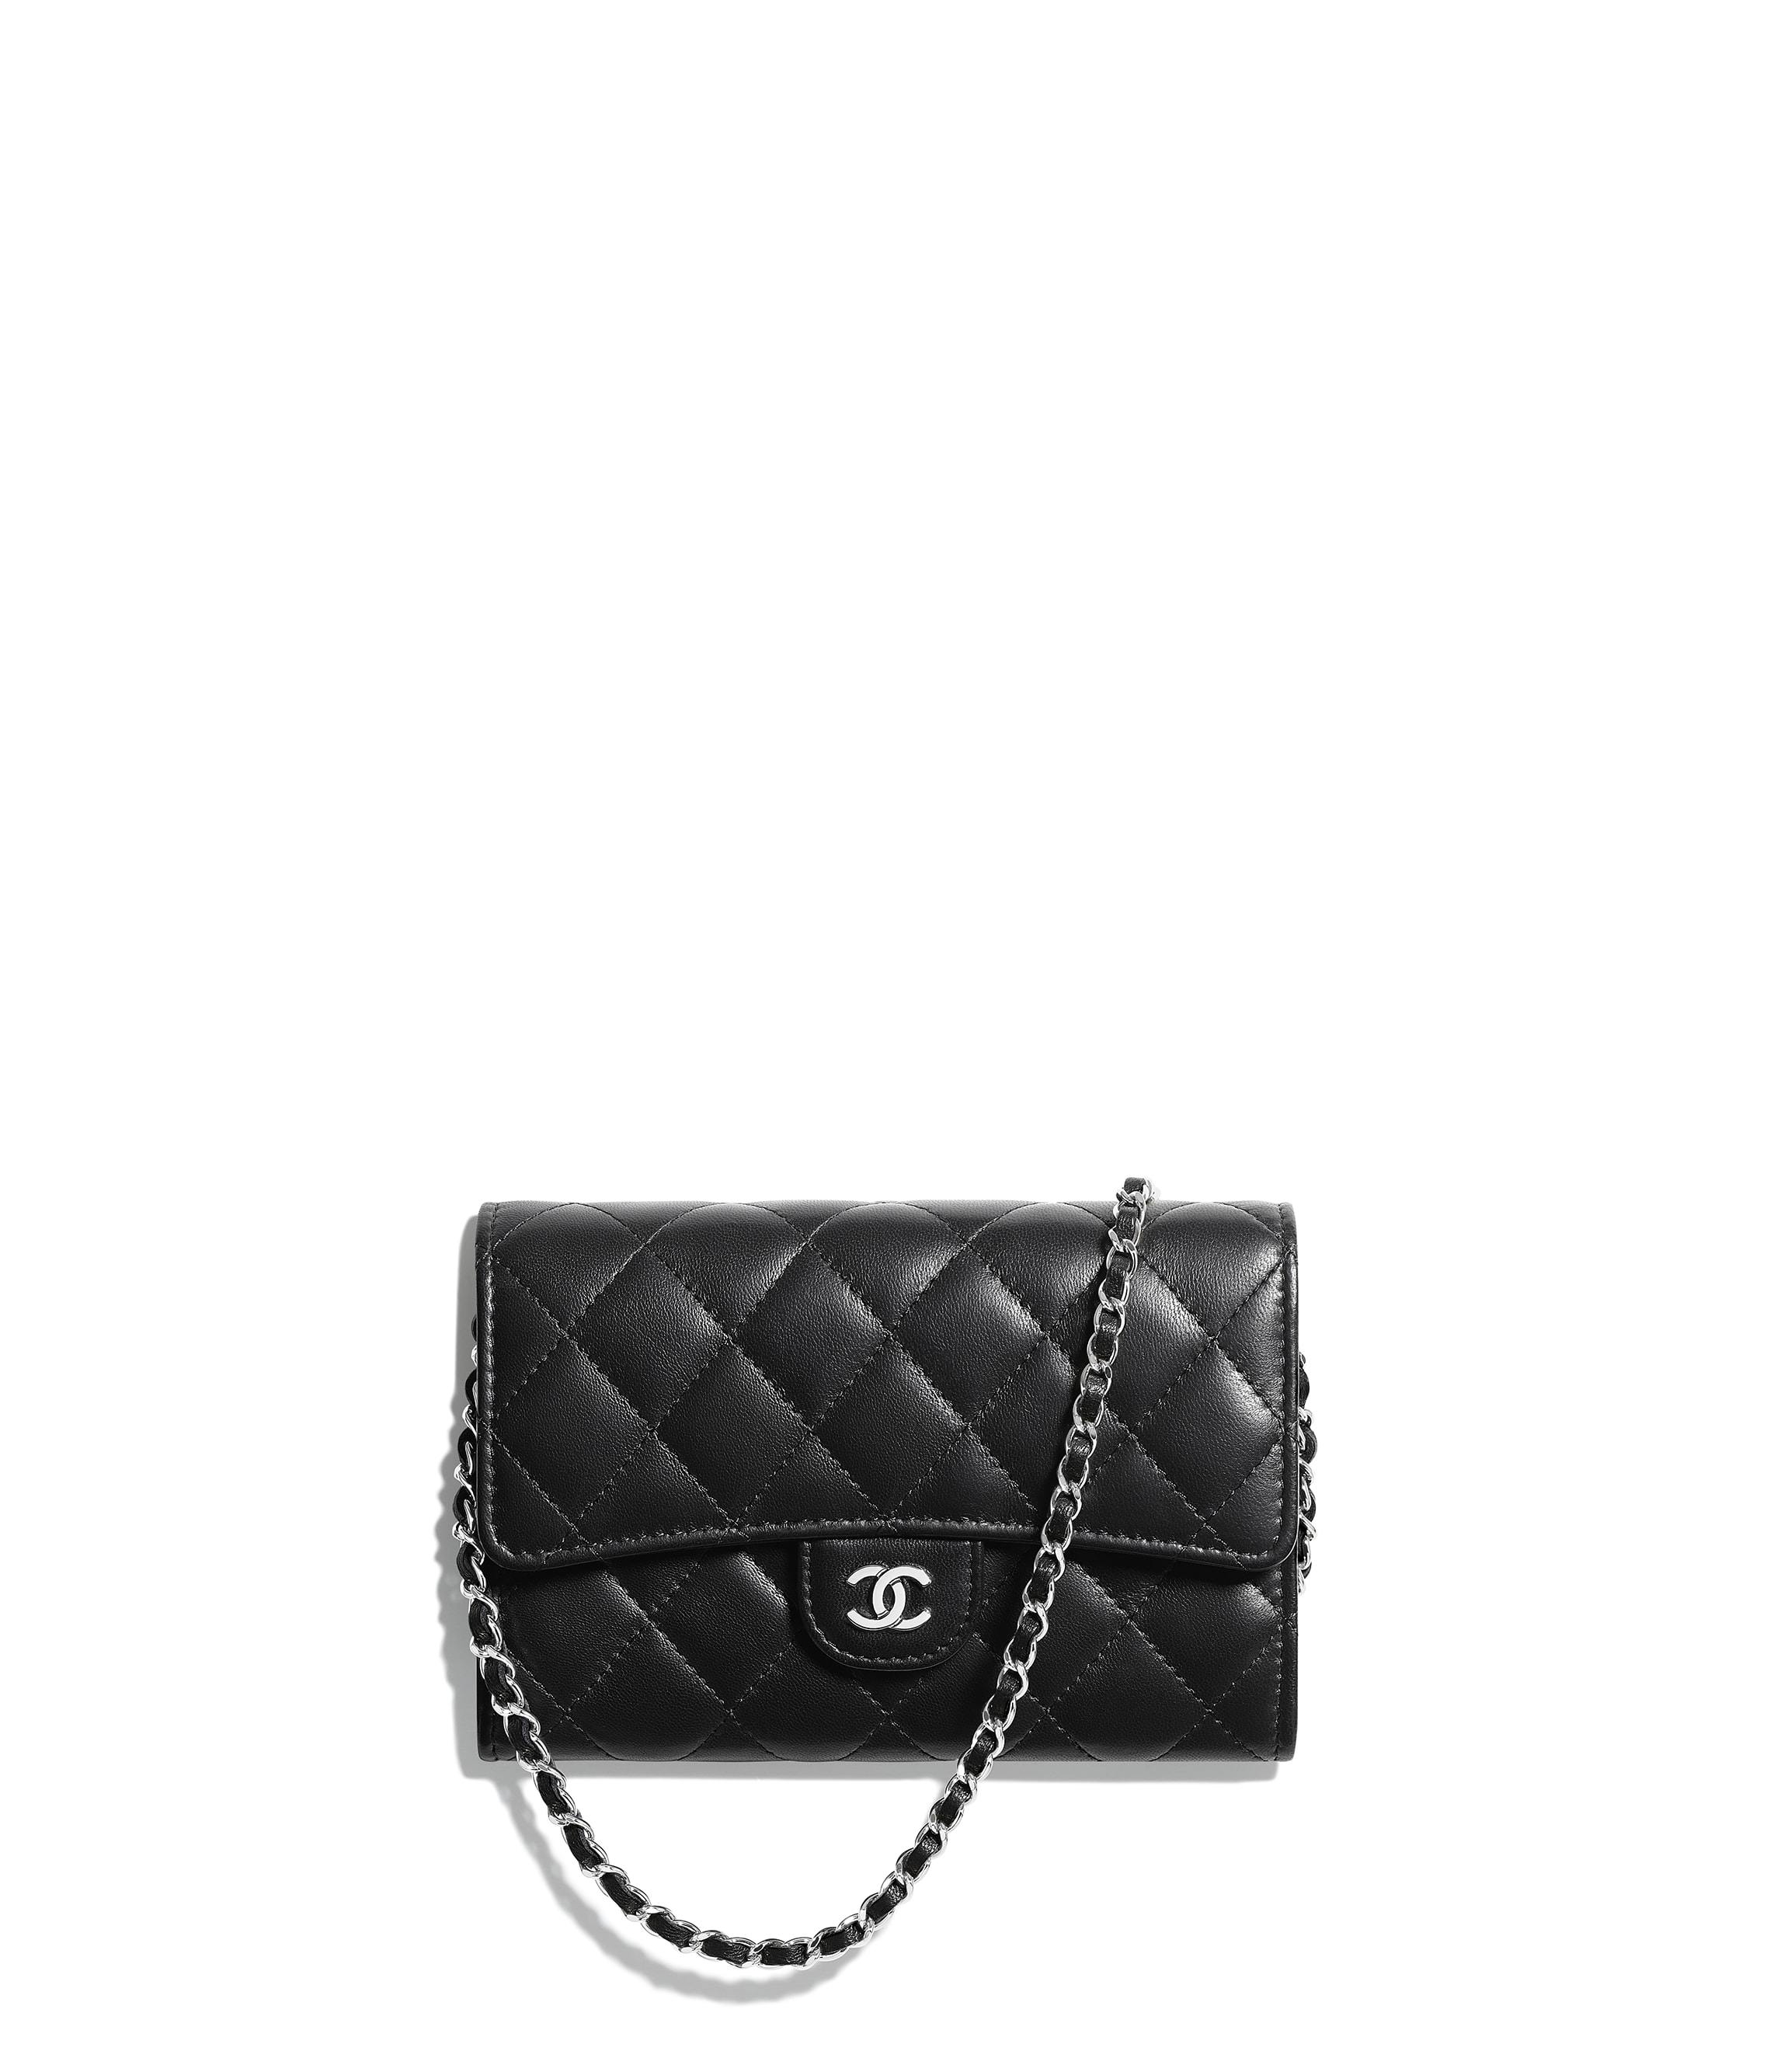 buy cheap noveldesign exquisite craftsmanship Classic Clutch With Chain, lambskin, black - CHANEL